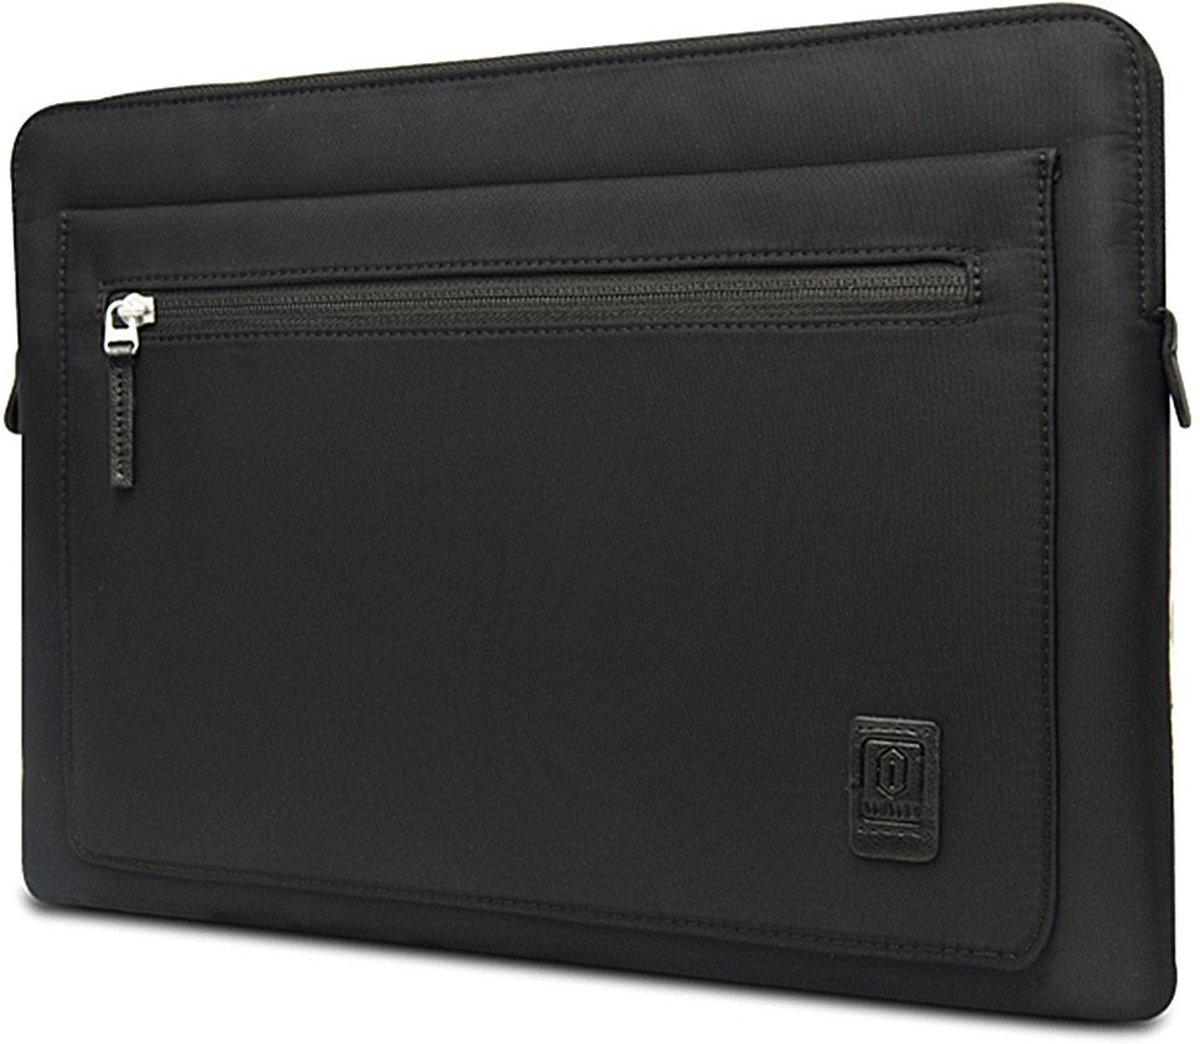 WIWU - 13.3 inch Athena Laptop & Macbook Sleeve - Zwart